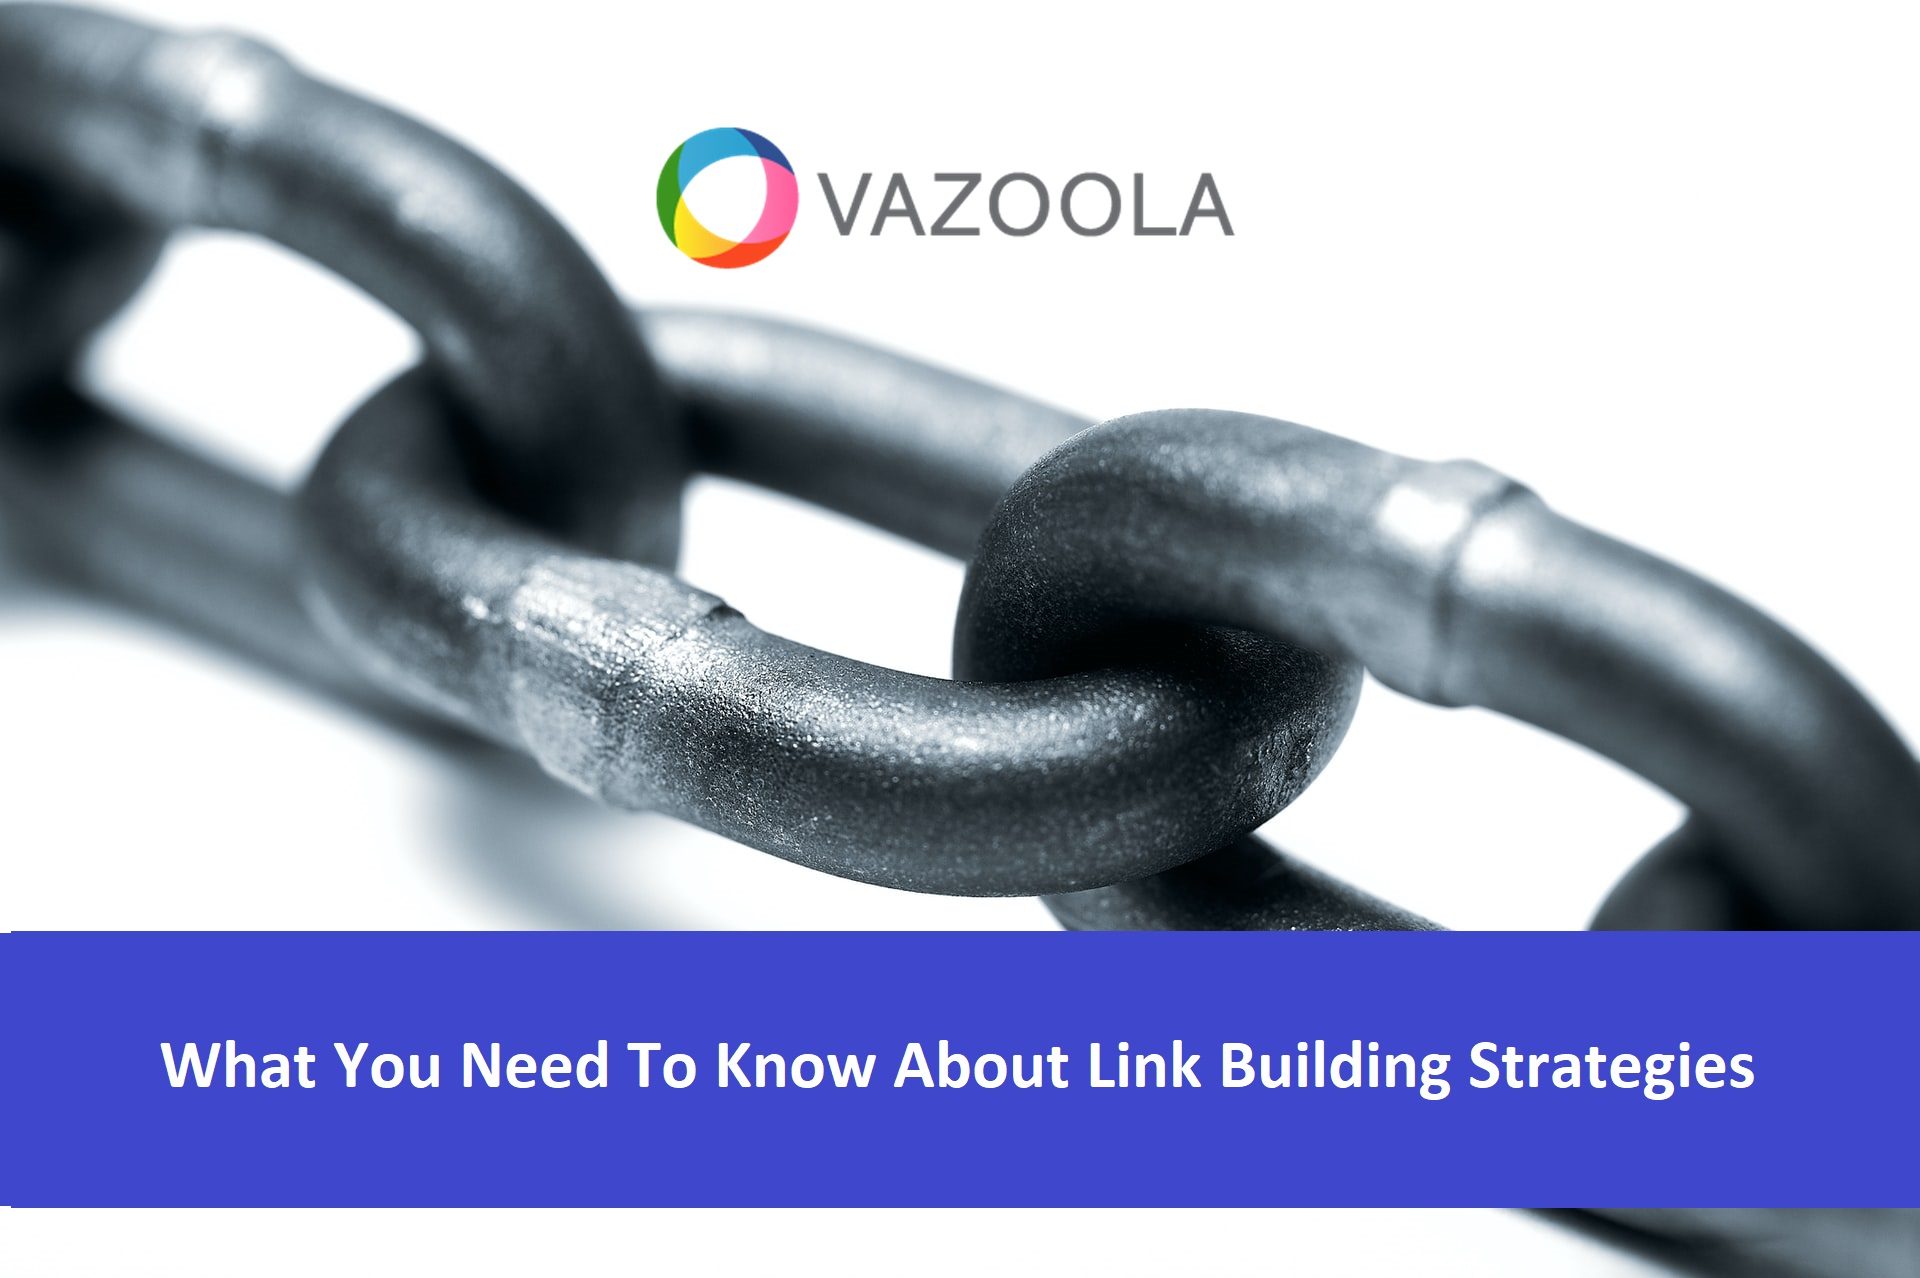 What You Need To Know About Link Building Strategies